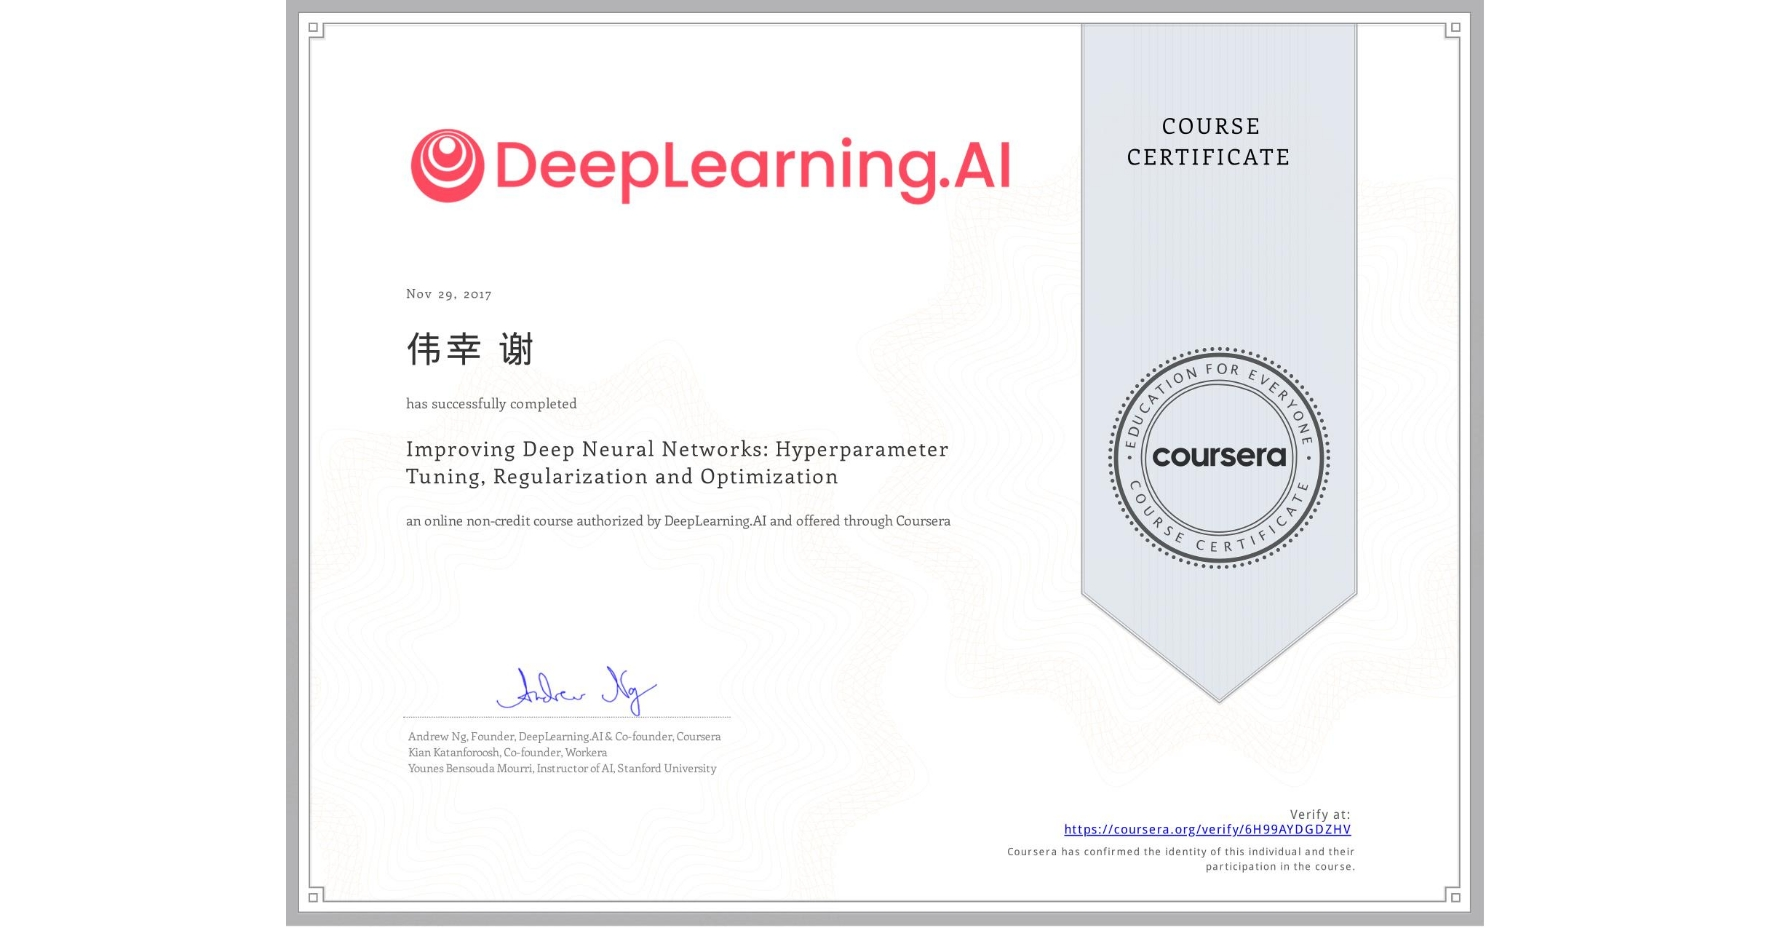 View certificate for 伟幸 谢, Improving Deep Neural Networks: Hyperparameter tuning, Regularization and Optimization, an online non-credit course authorized by DeepLearning.AI and offered through Coursera